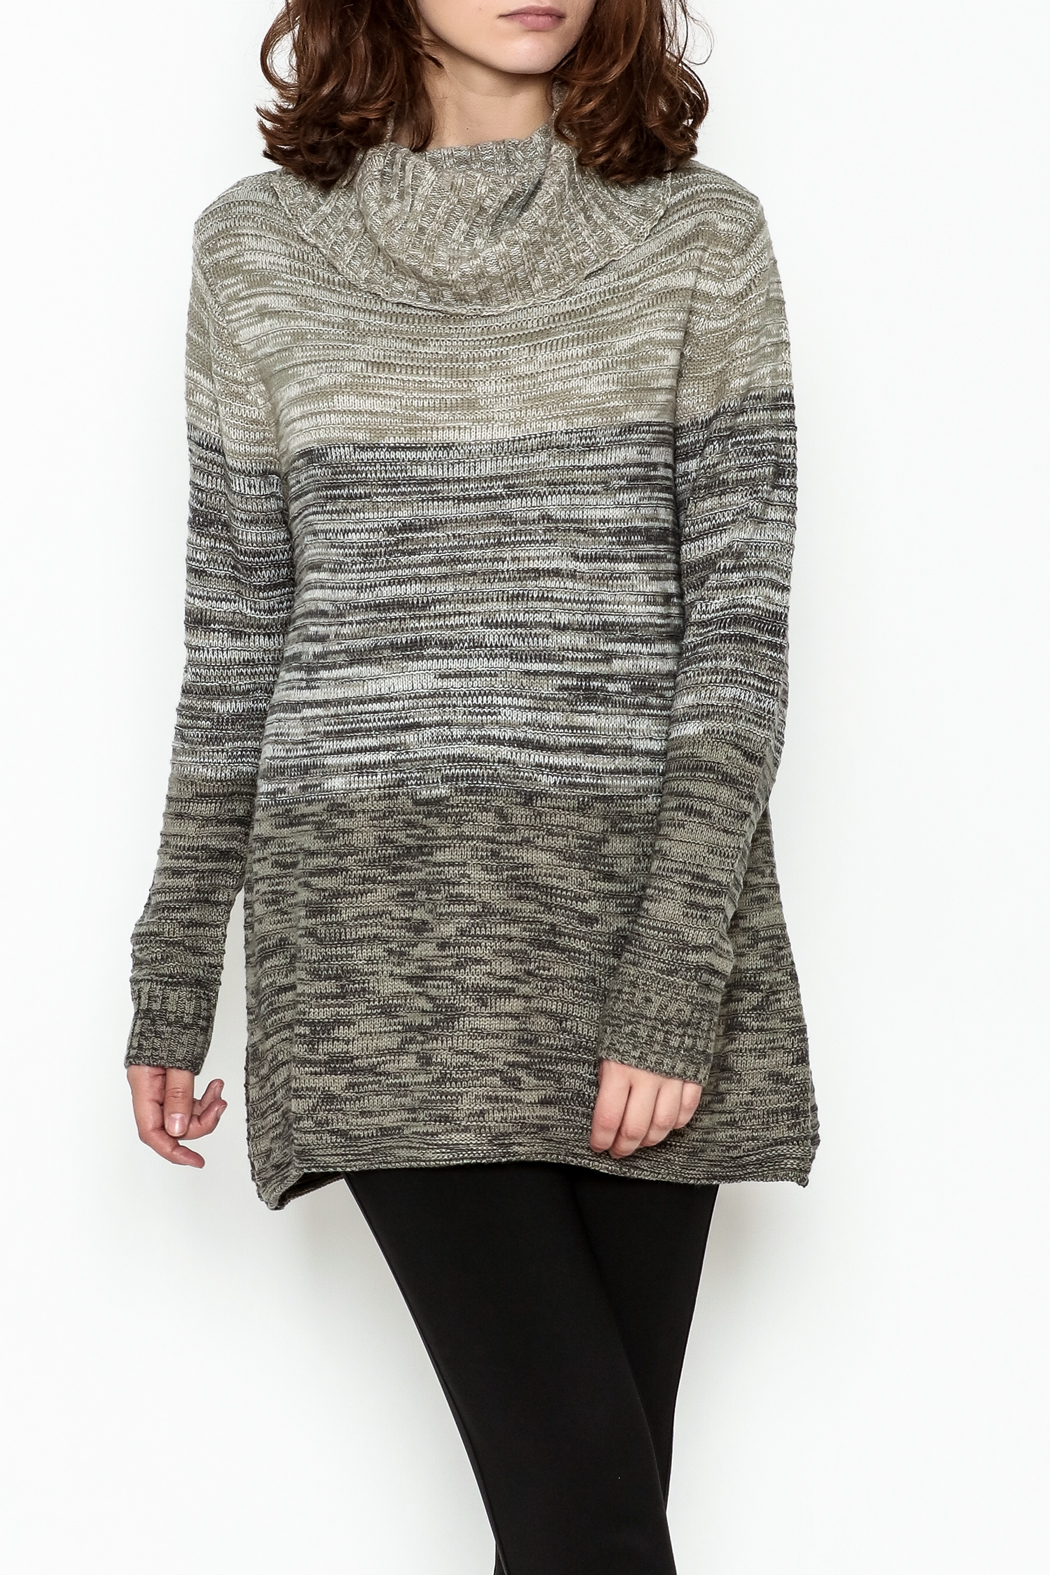 Keren Hart Variegated Cowl Neck Sweater - Front Cropped Image